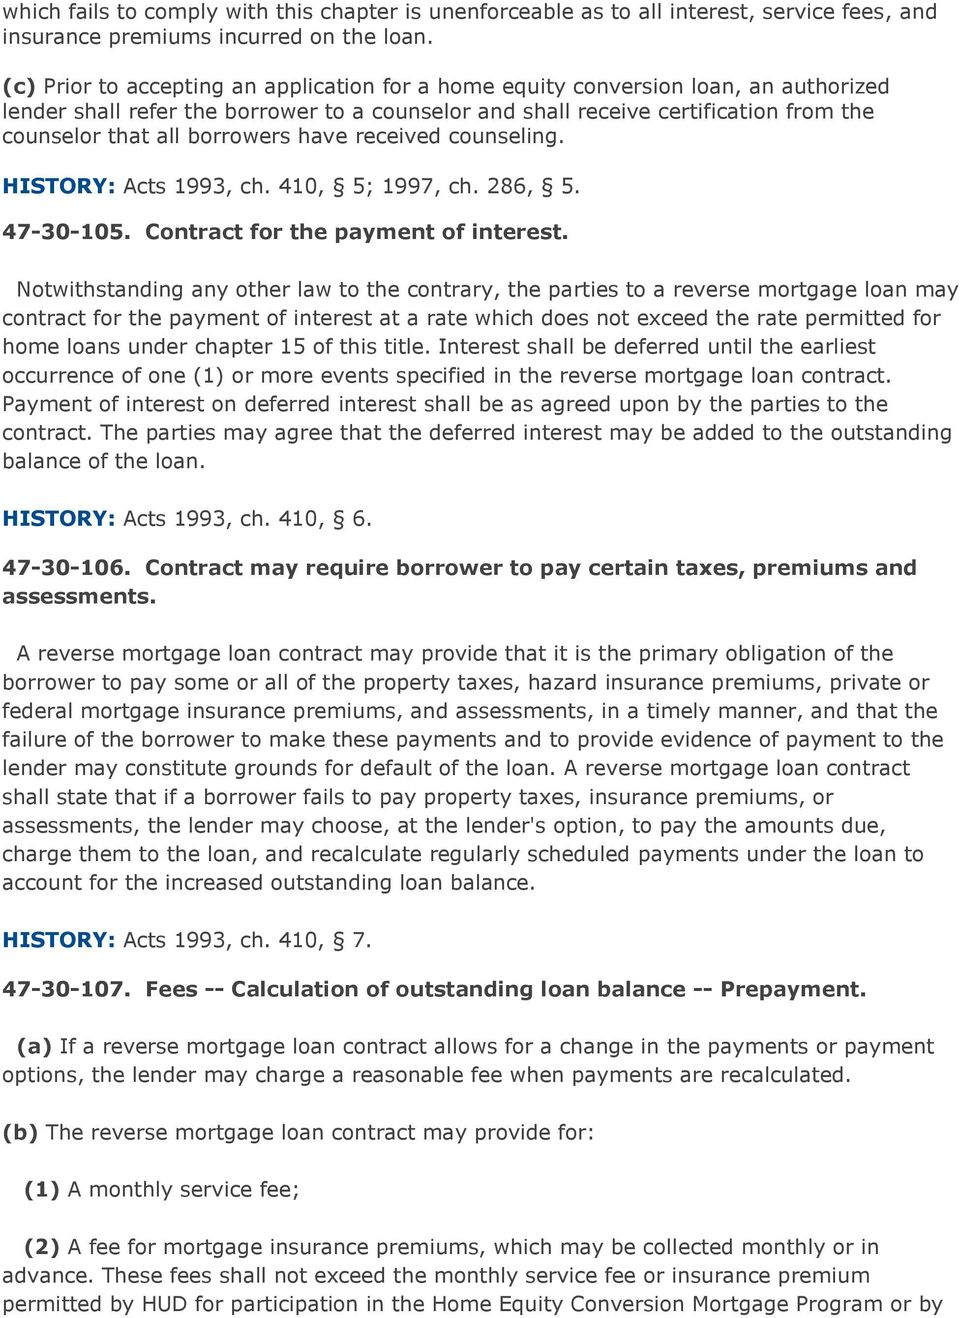 borrowers have received counseling. HISTORY: Acts 1993, ch. 410, 5; 1997, ch. 286, 5. 47-30-105. Contract for the payment of interest.